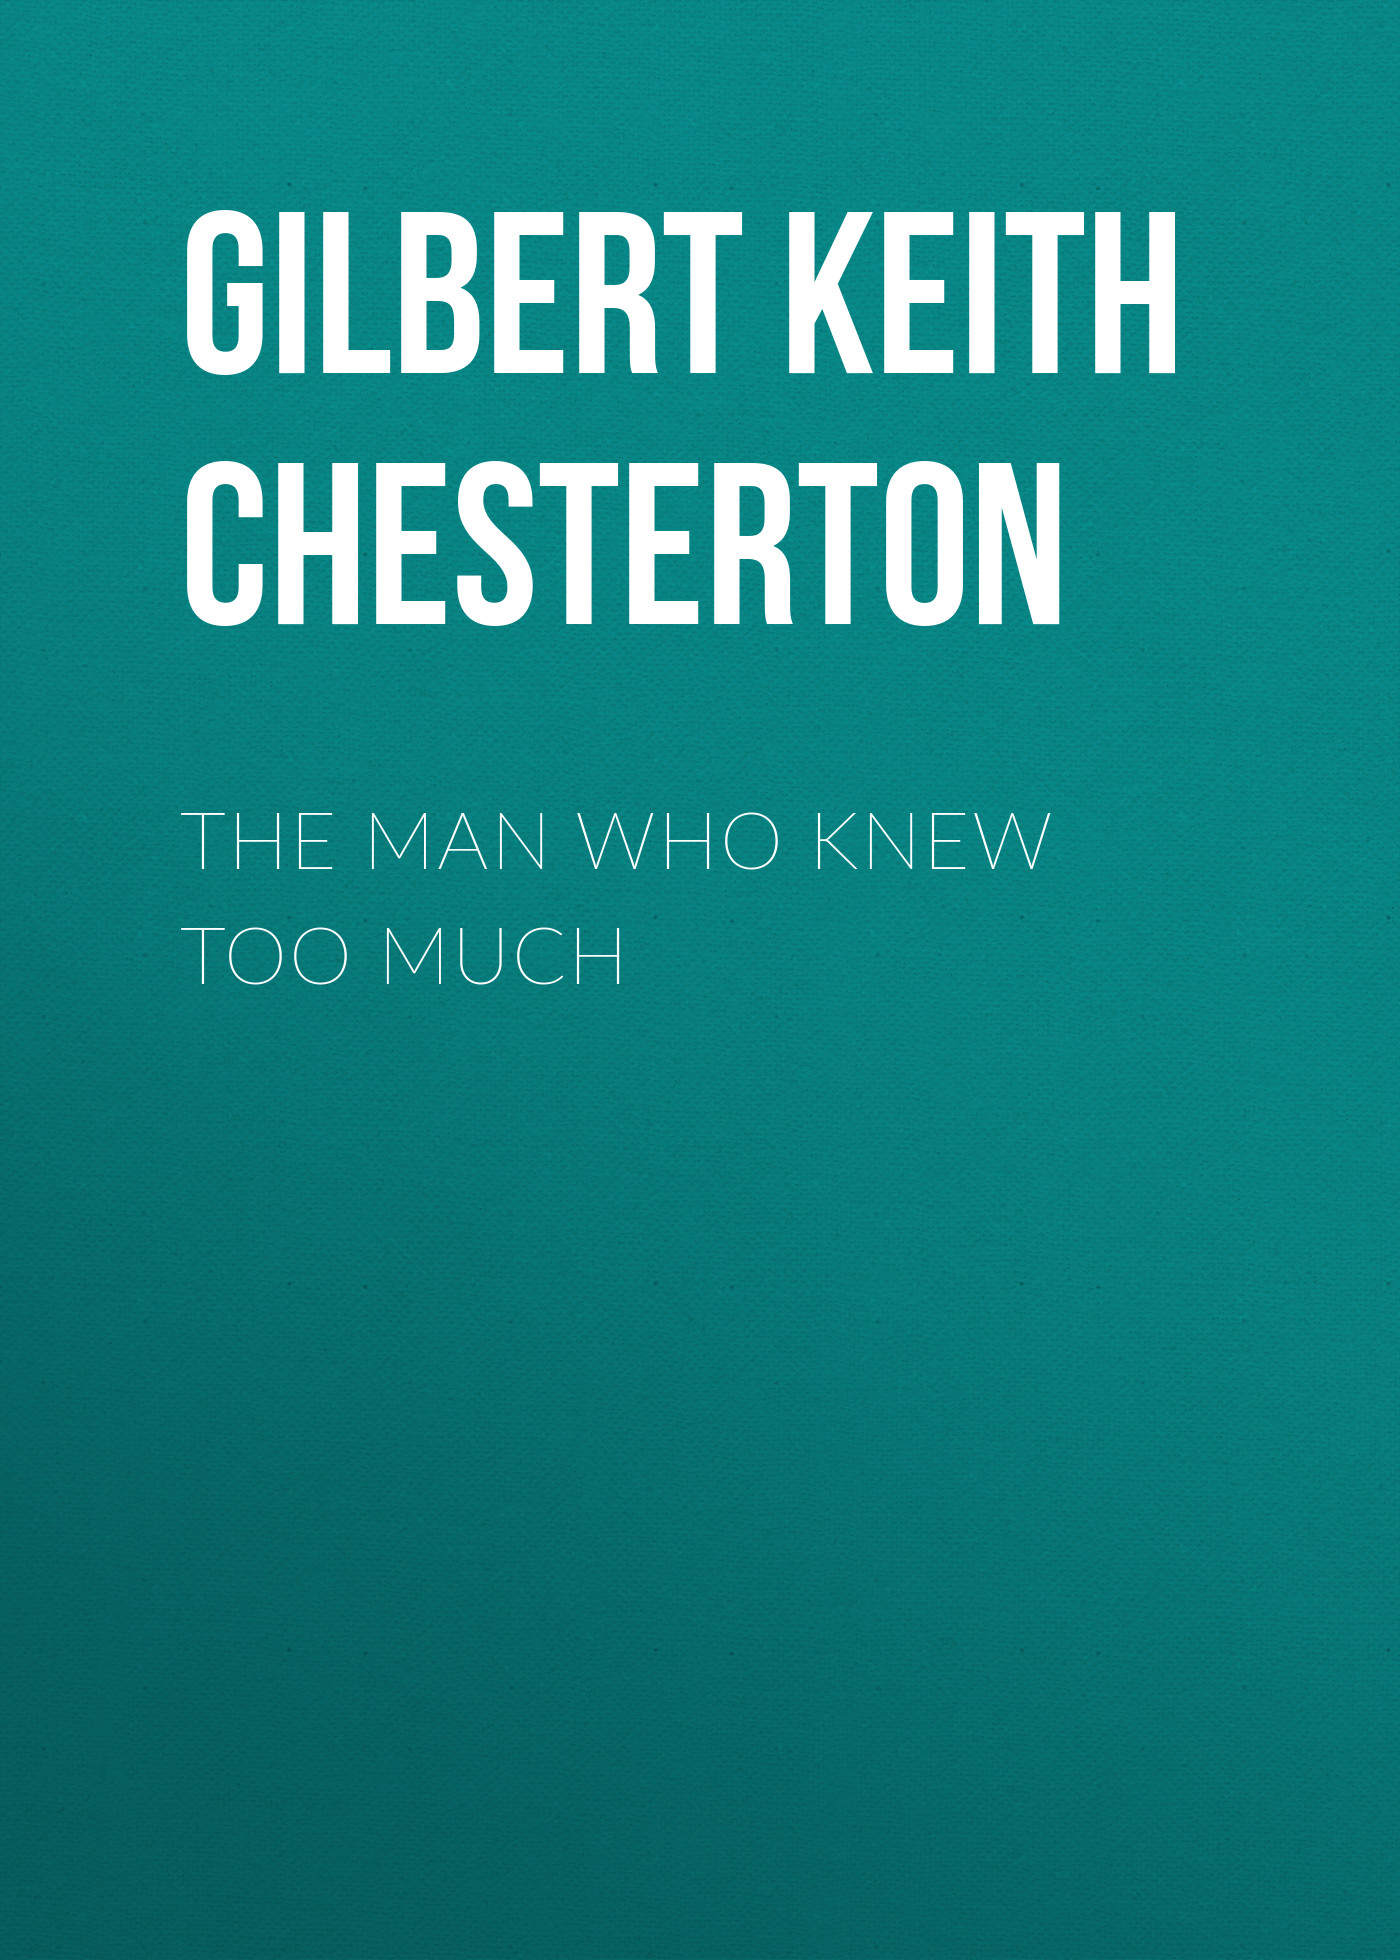 b68c096a93 Gilbert Keith Chesterton The Man Who Knew Too Much